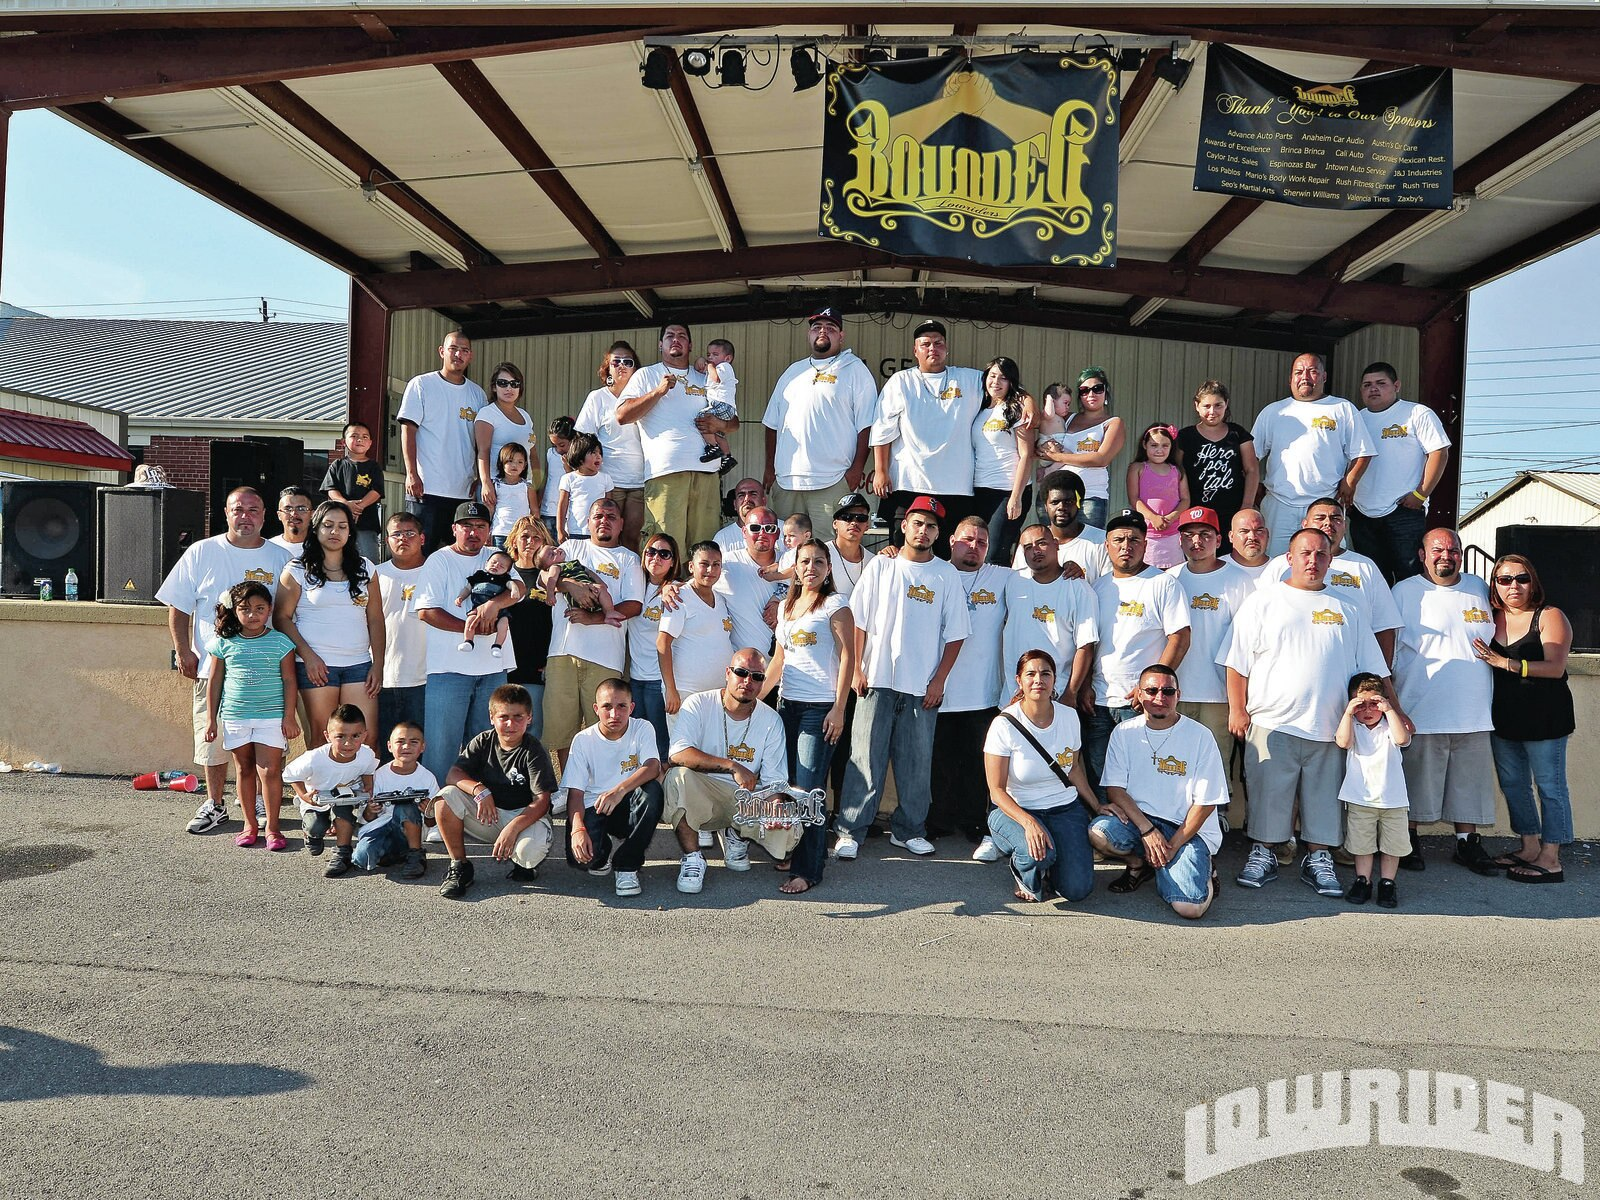 1208-lrmp-01-o-bounded-car-club-first-annual-car-show-bounded-car-club-members1